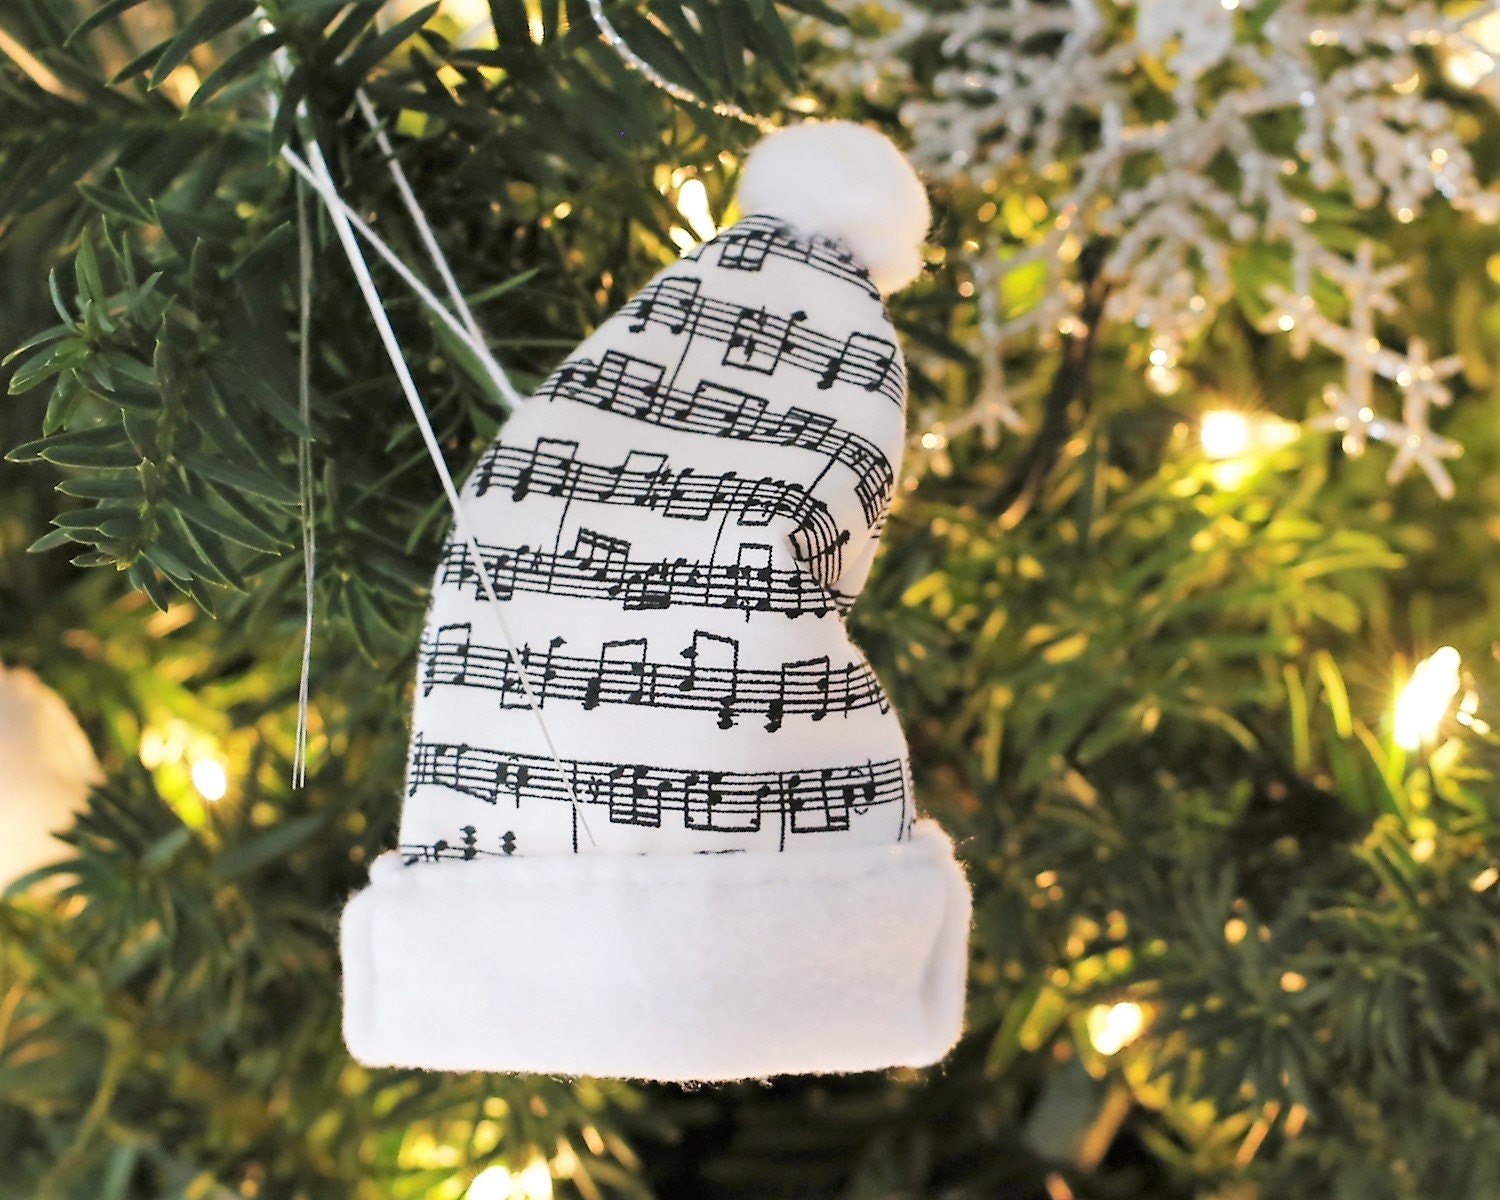 Music christmas ornaments - Music Christmas Ornaments Music Christmas Decorations Music Christmas Tree Music Lover Christmas Gifts Piano Teacher Gift Music Ornament